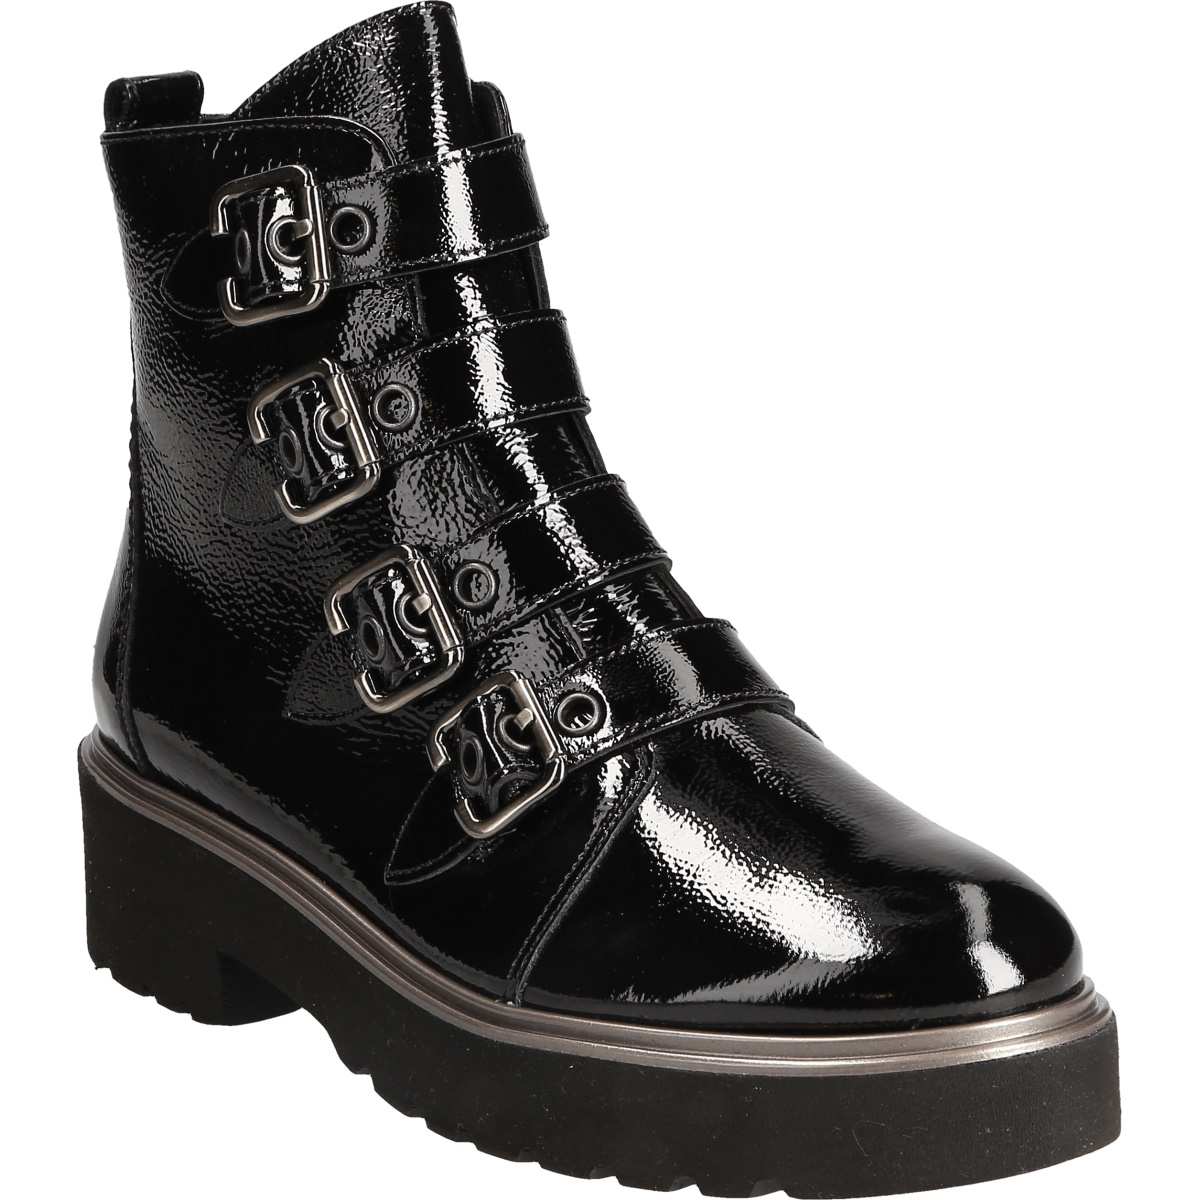 timeless design 2c140 f1b3e Half-boots in black - 9395-013 Buy in Paul Green Online-Shop